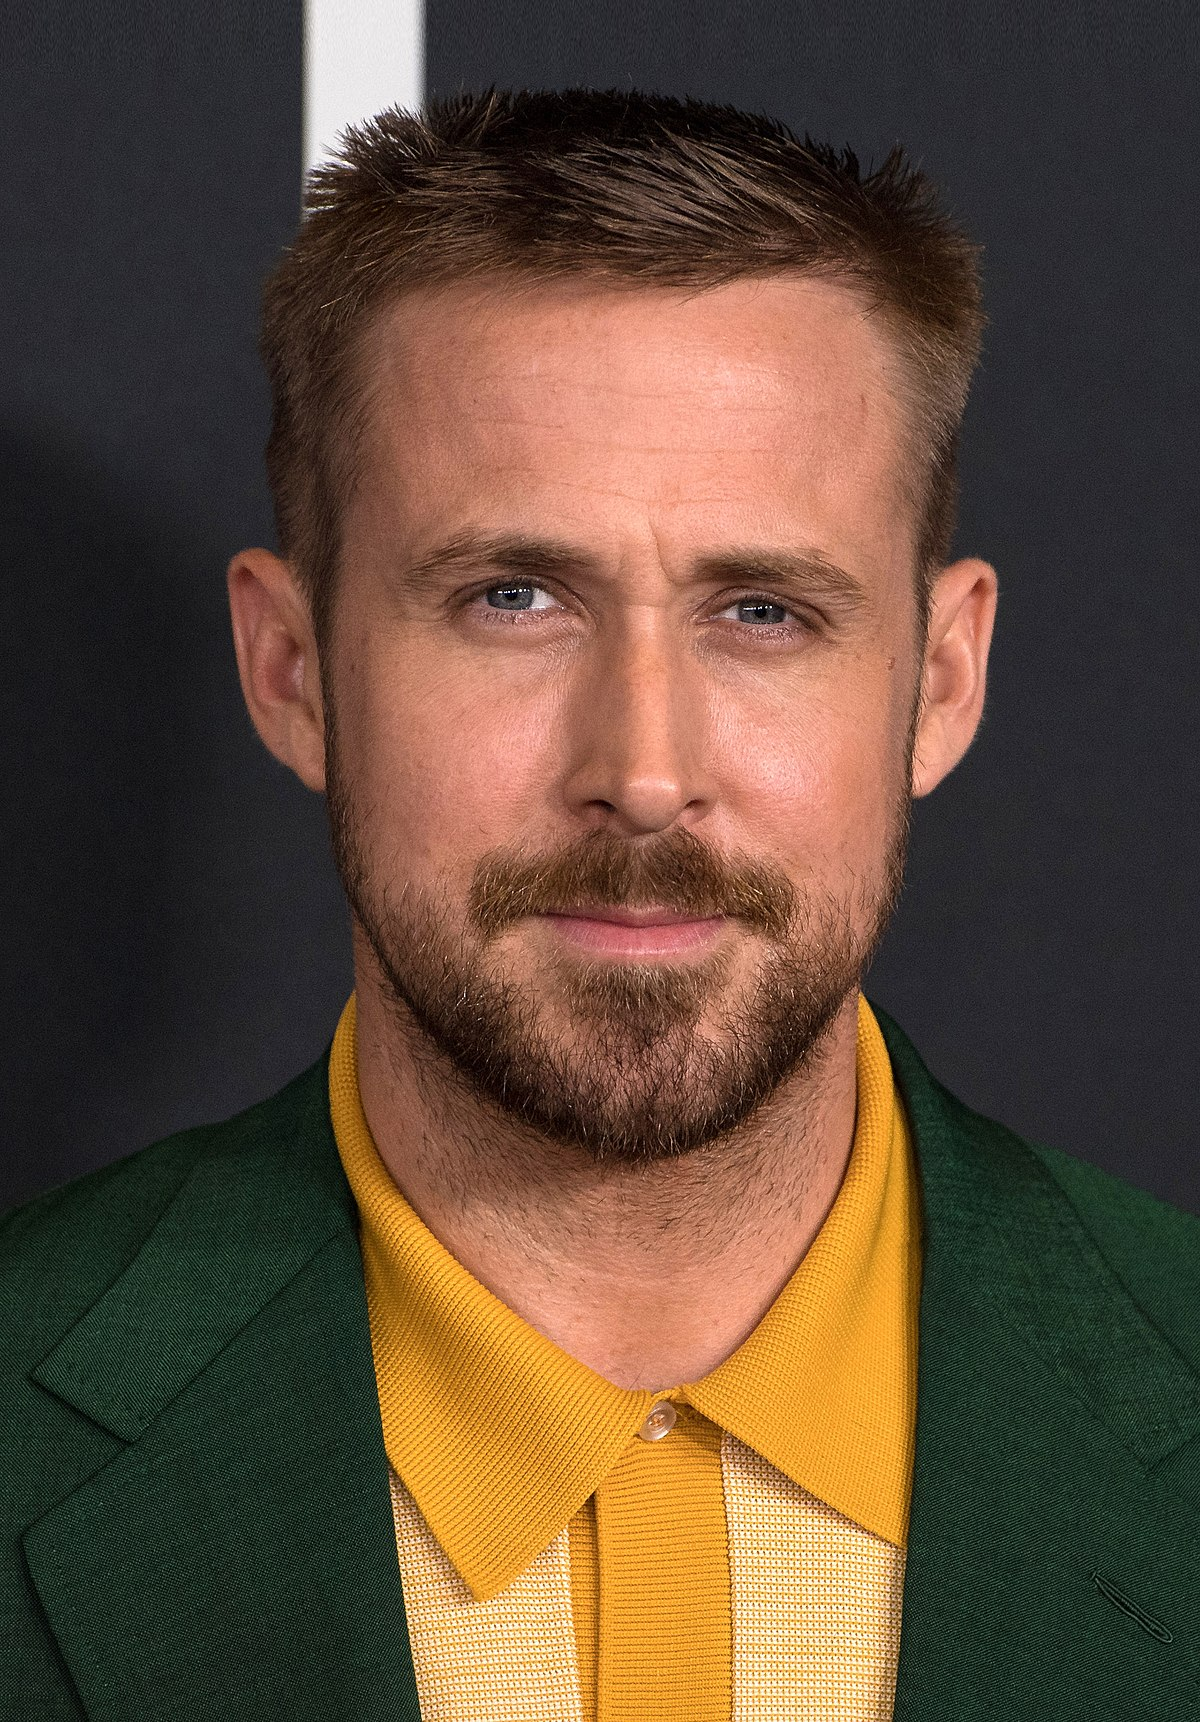 Ryan Gosling - Wikiped...